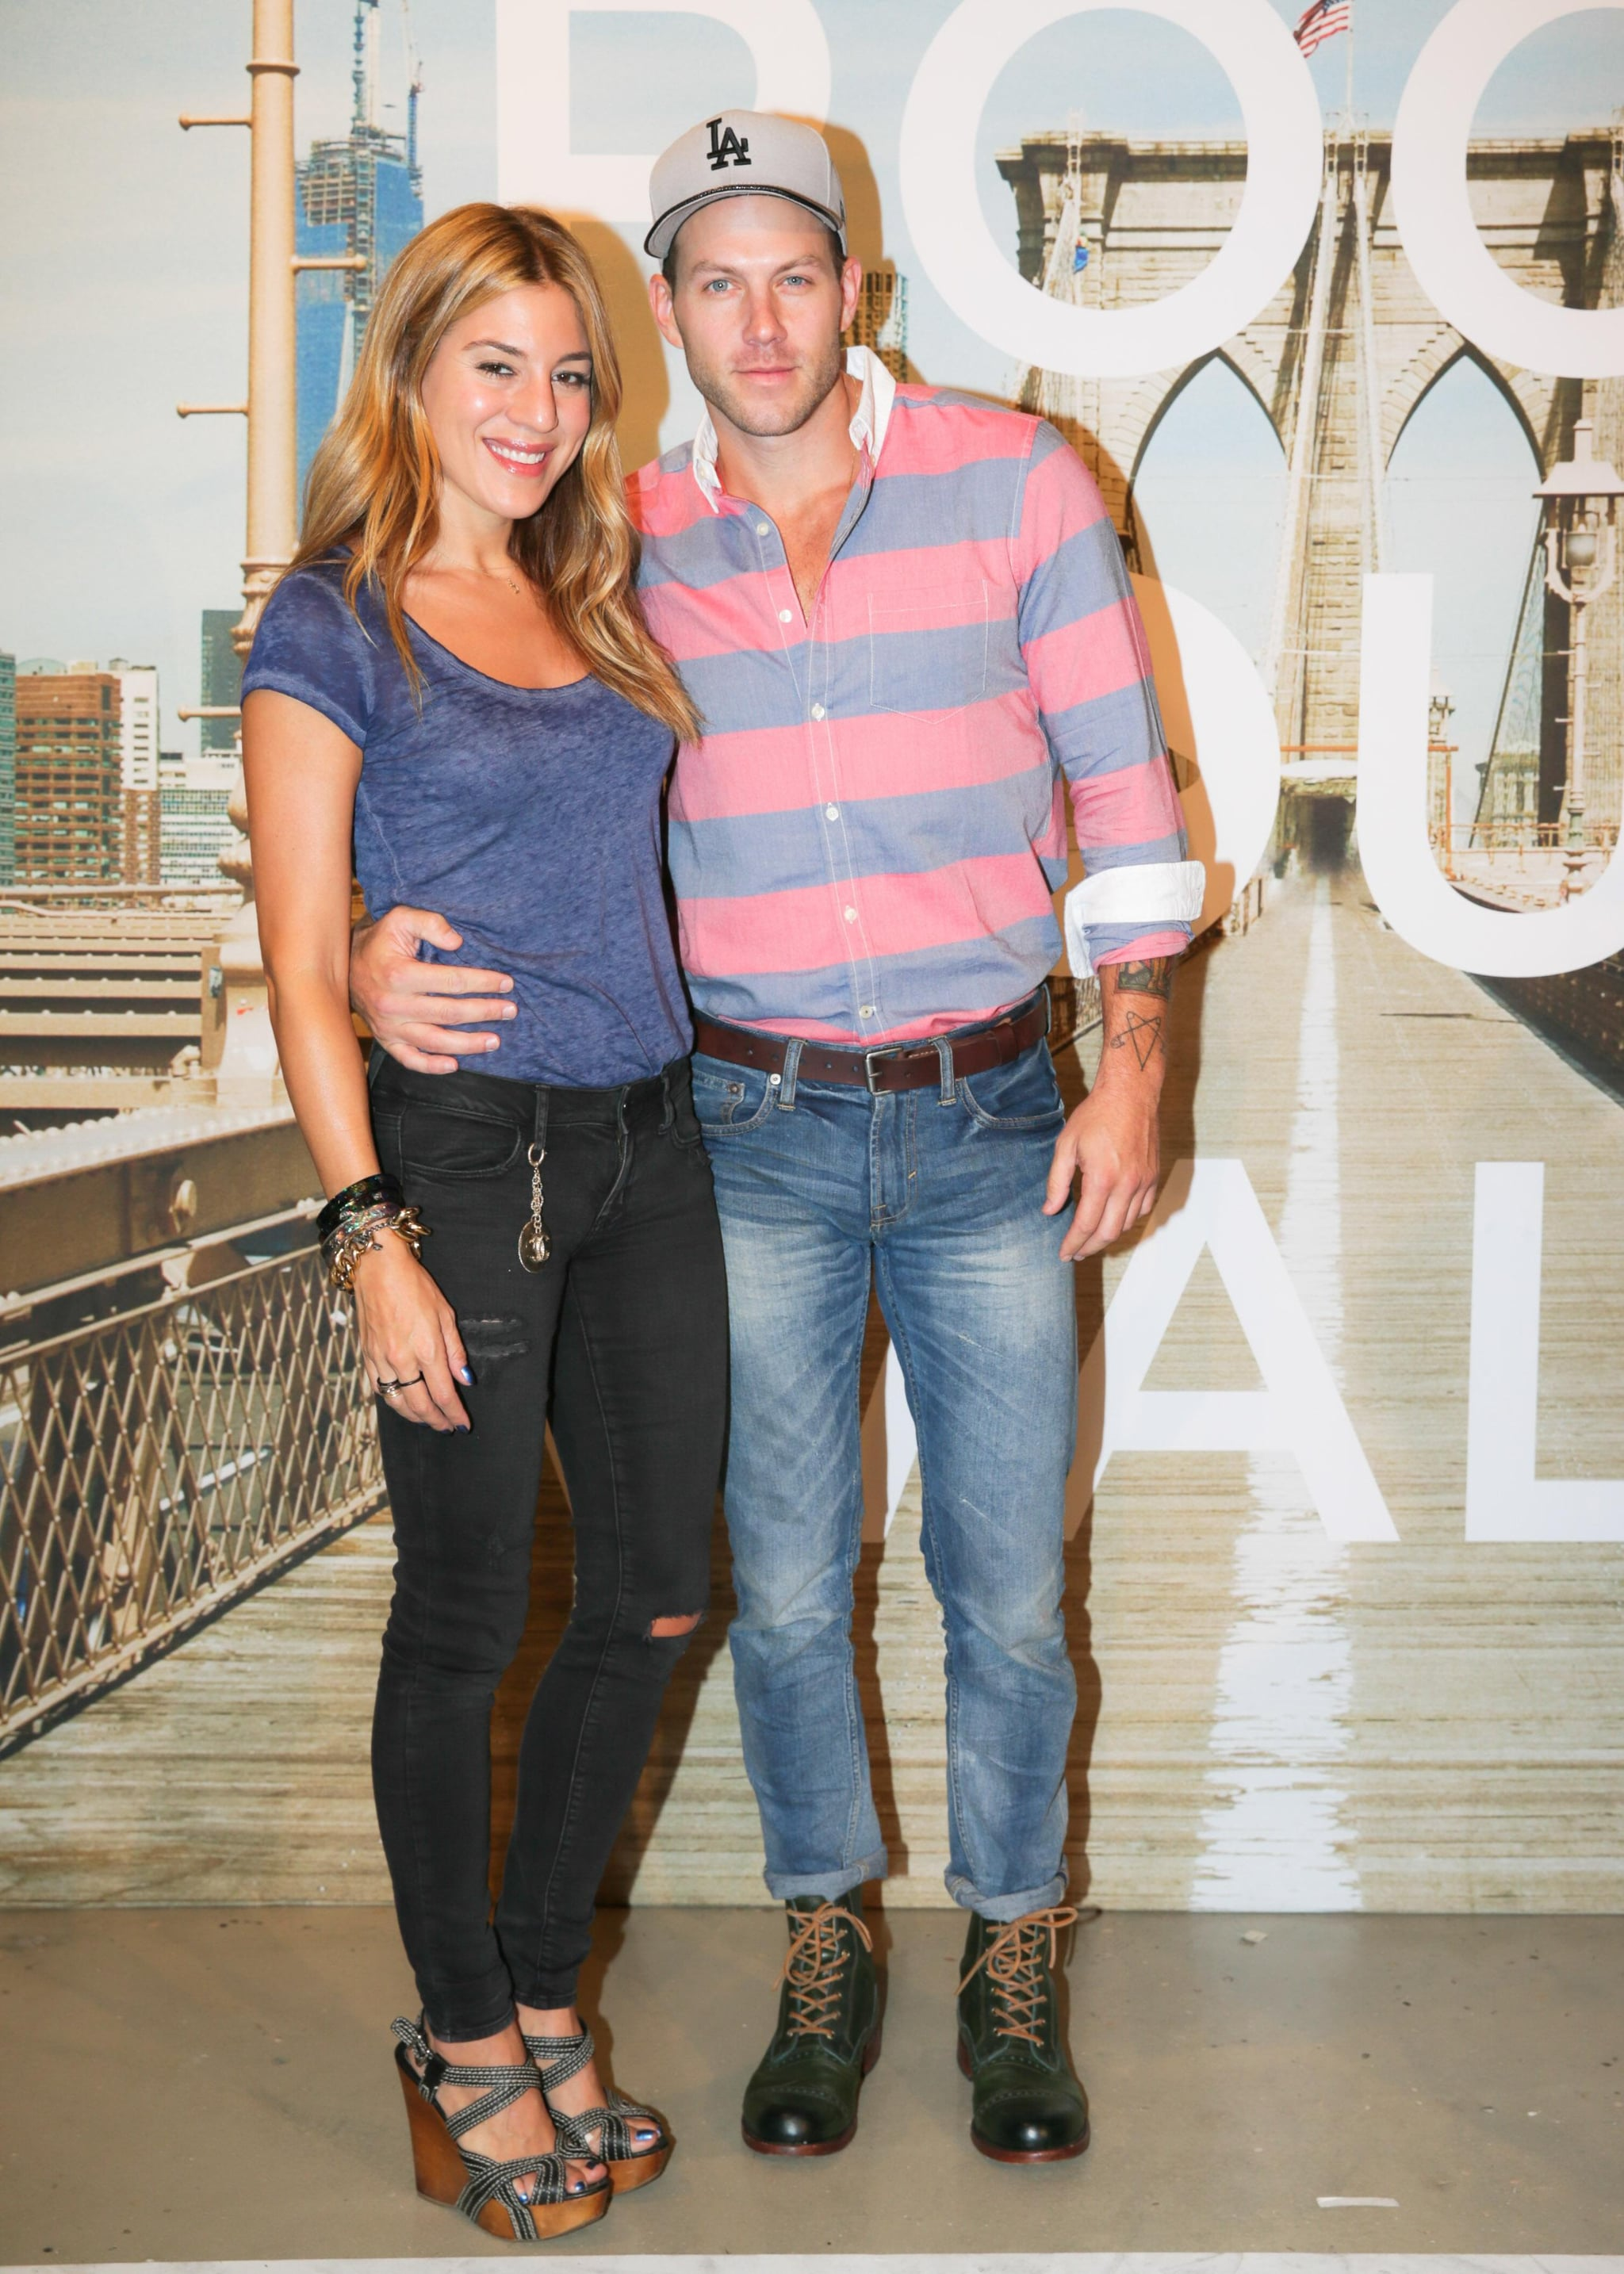 At the Times Square American Eagle bash, Dani Stahl and Johnny Wujek wore their denim with style.